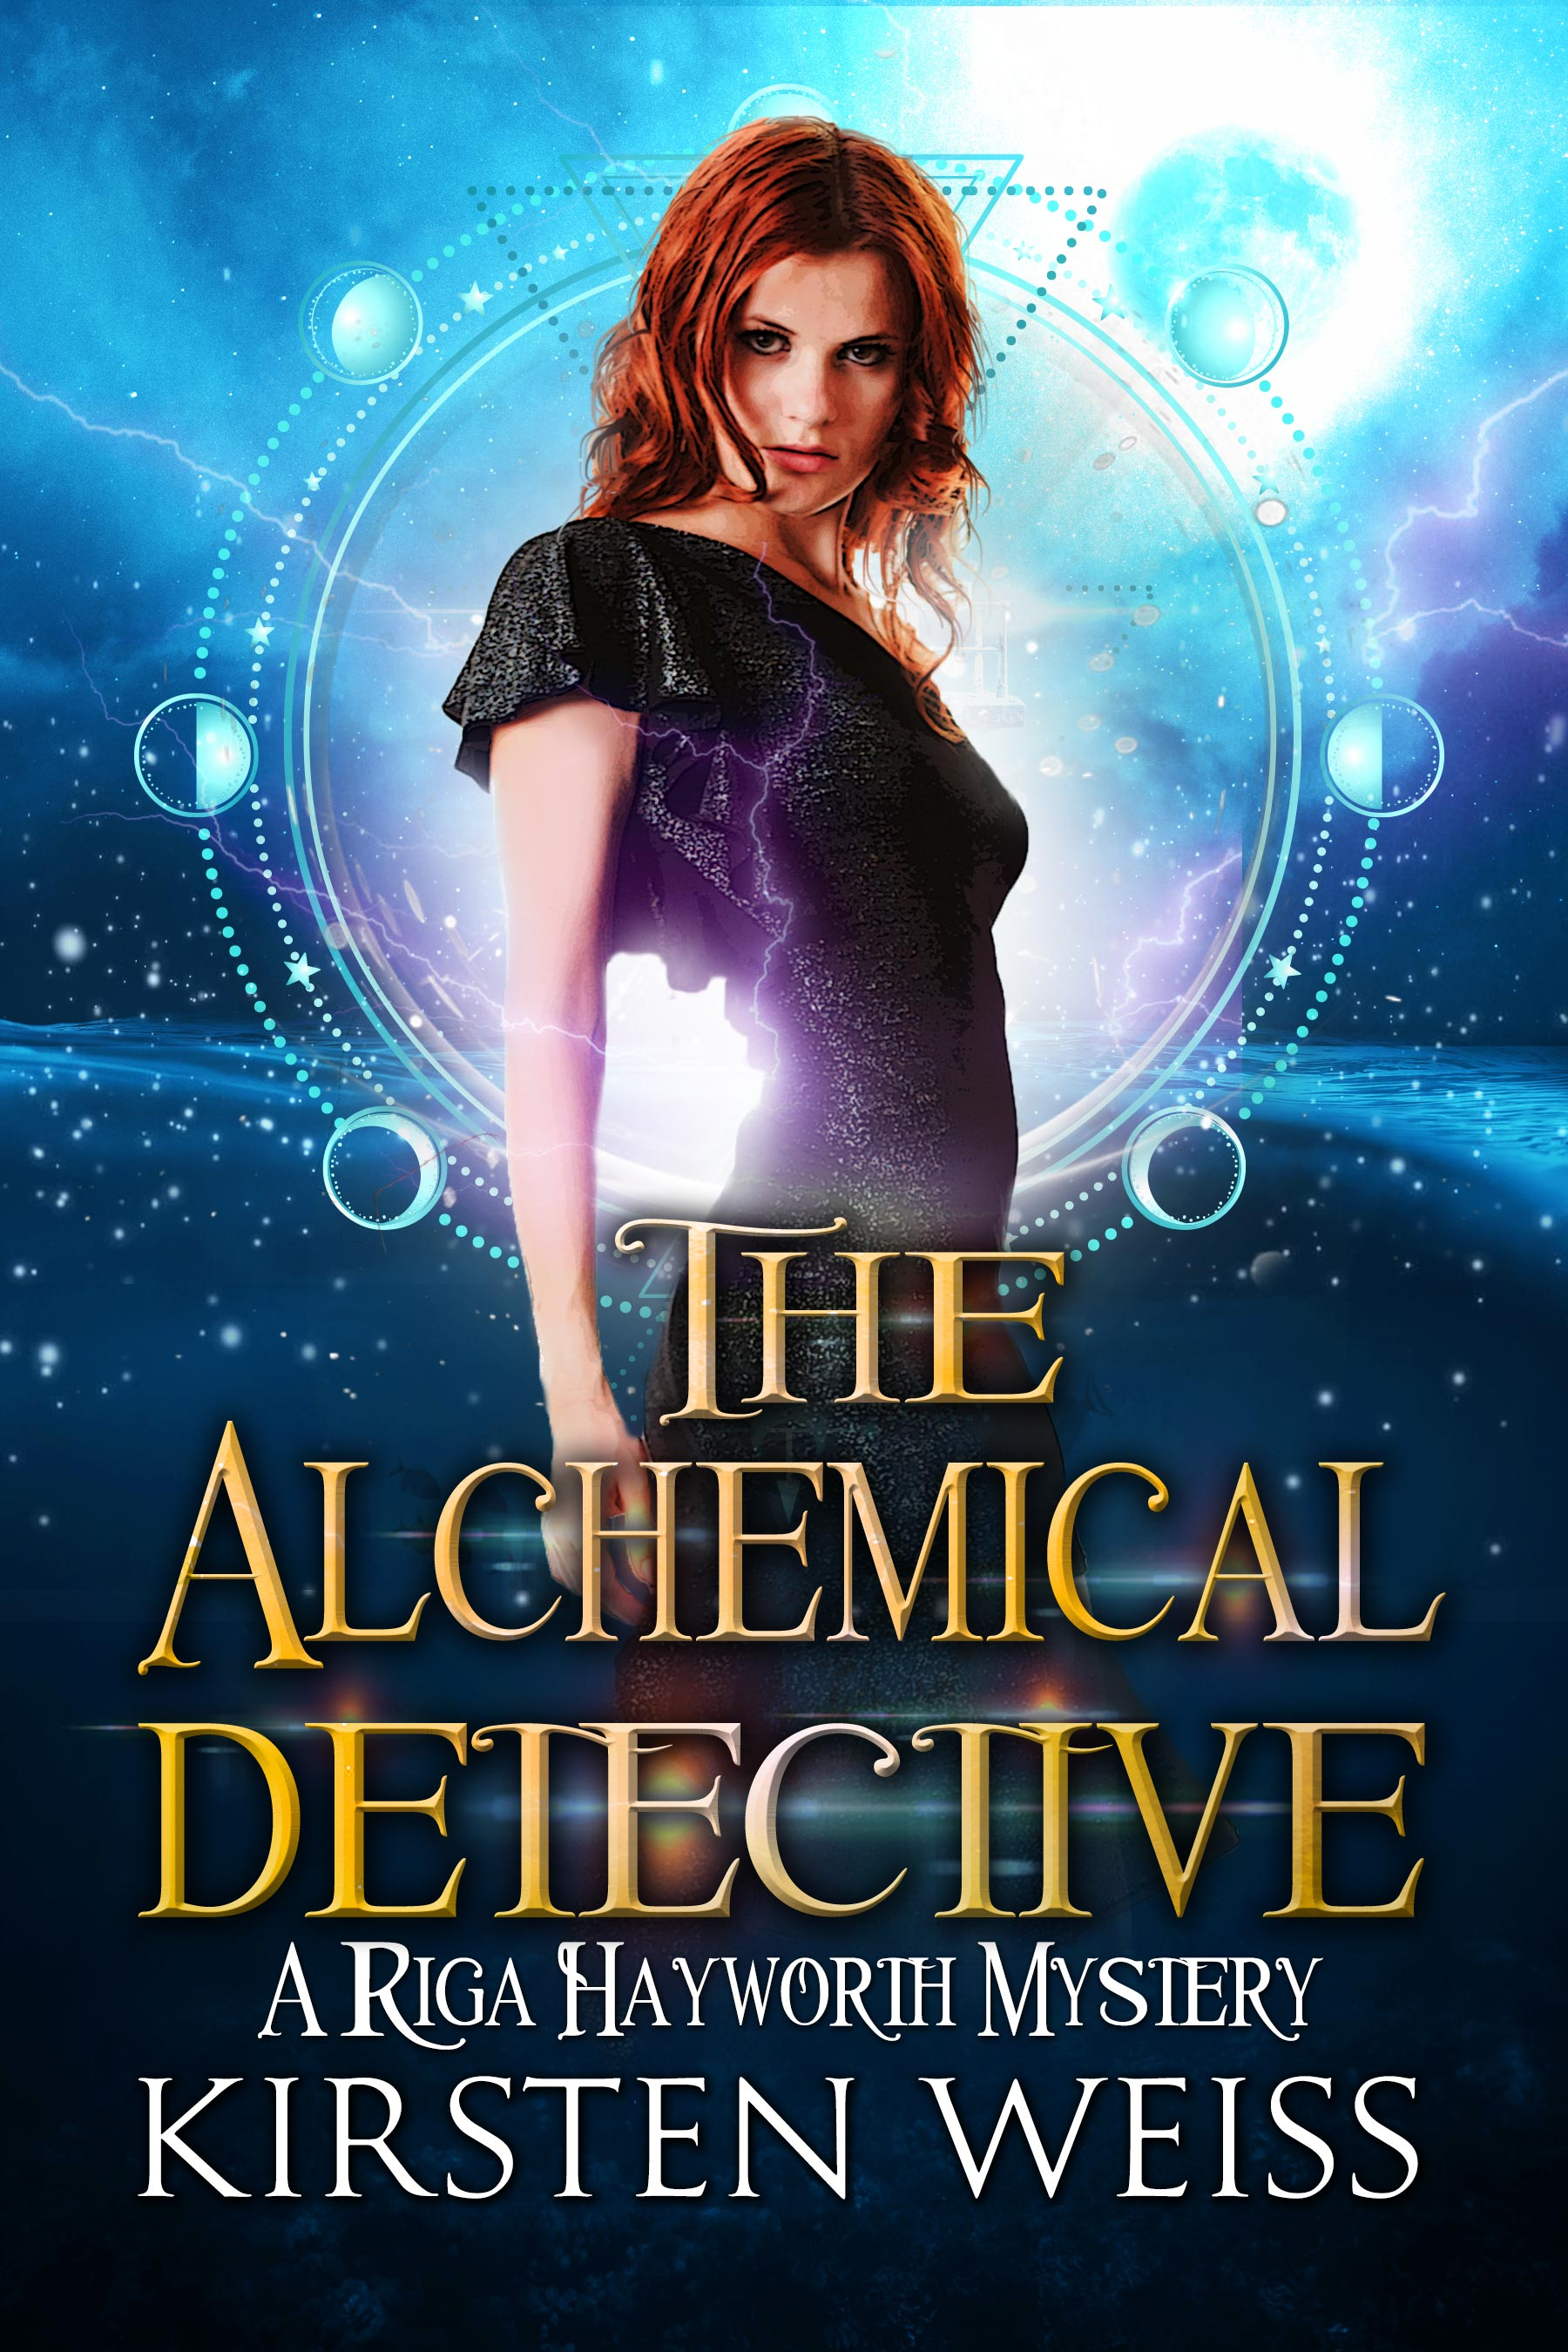 The Alchemical Detective